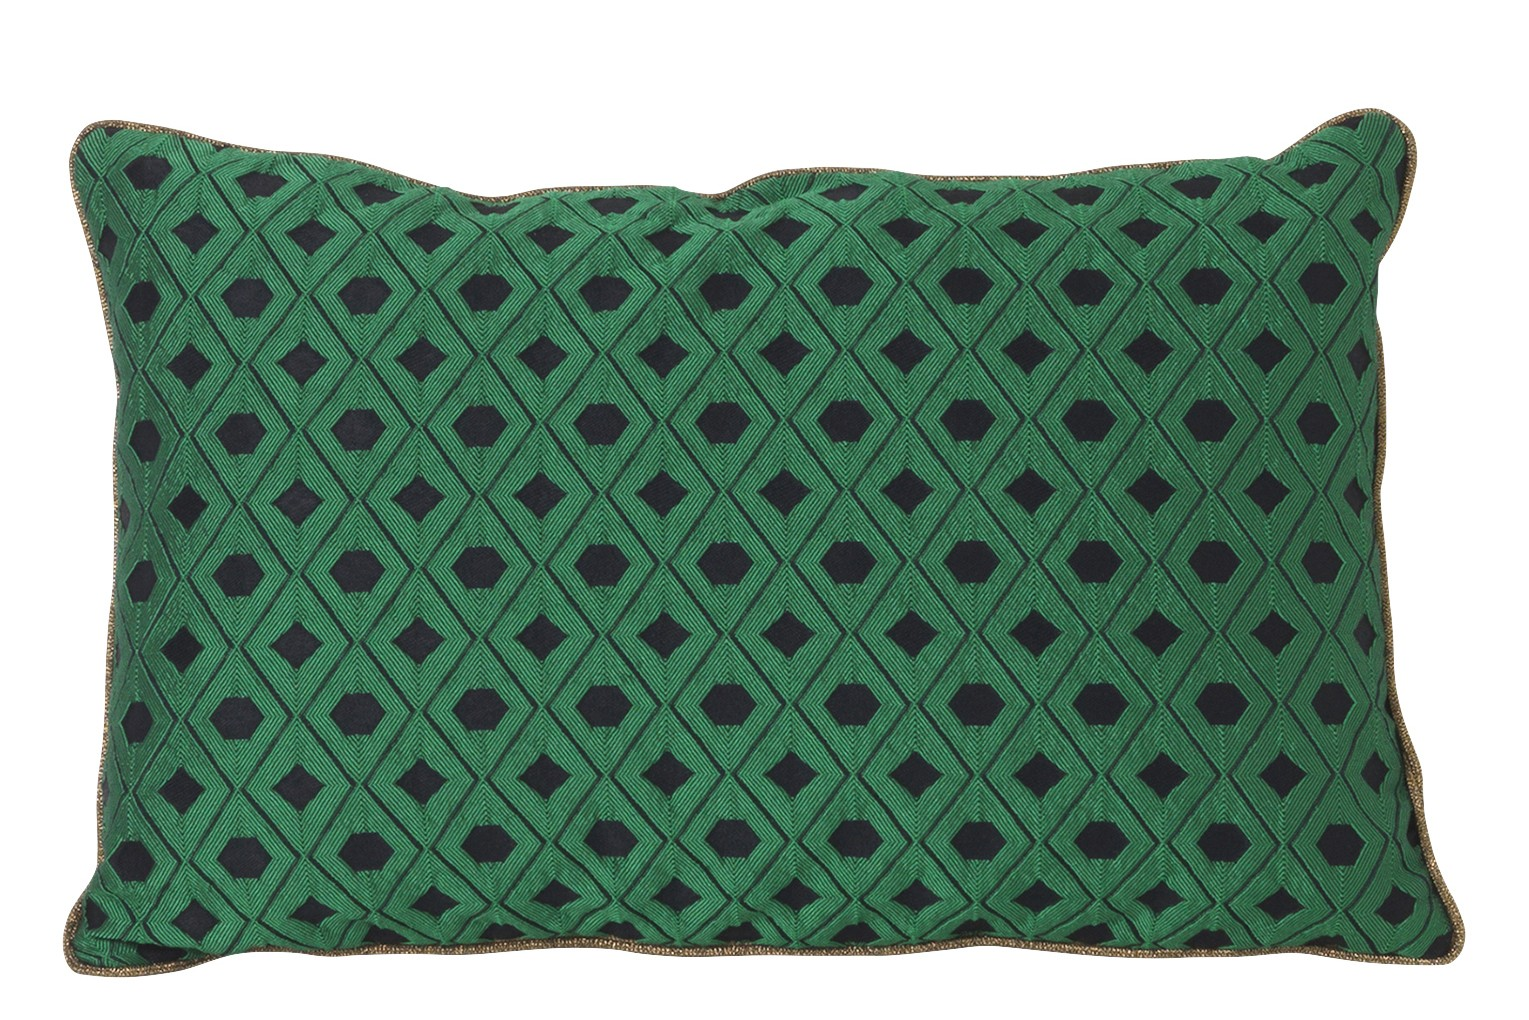 Salon Cushion - Set of 2 Mosaic - Green, 40 x 25 cm